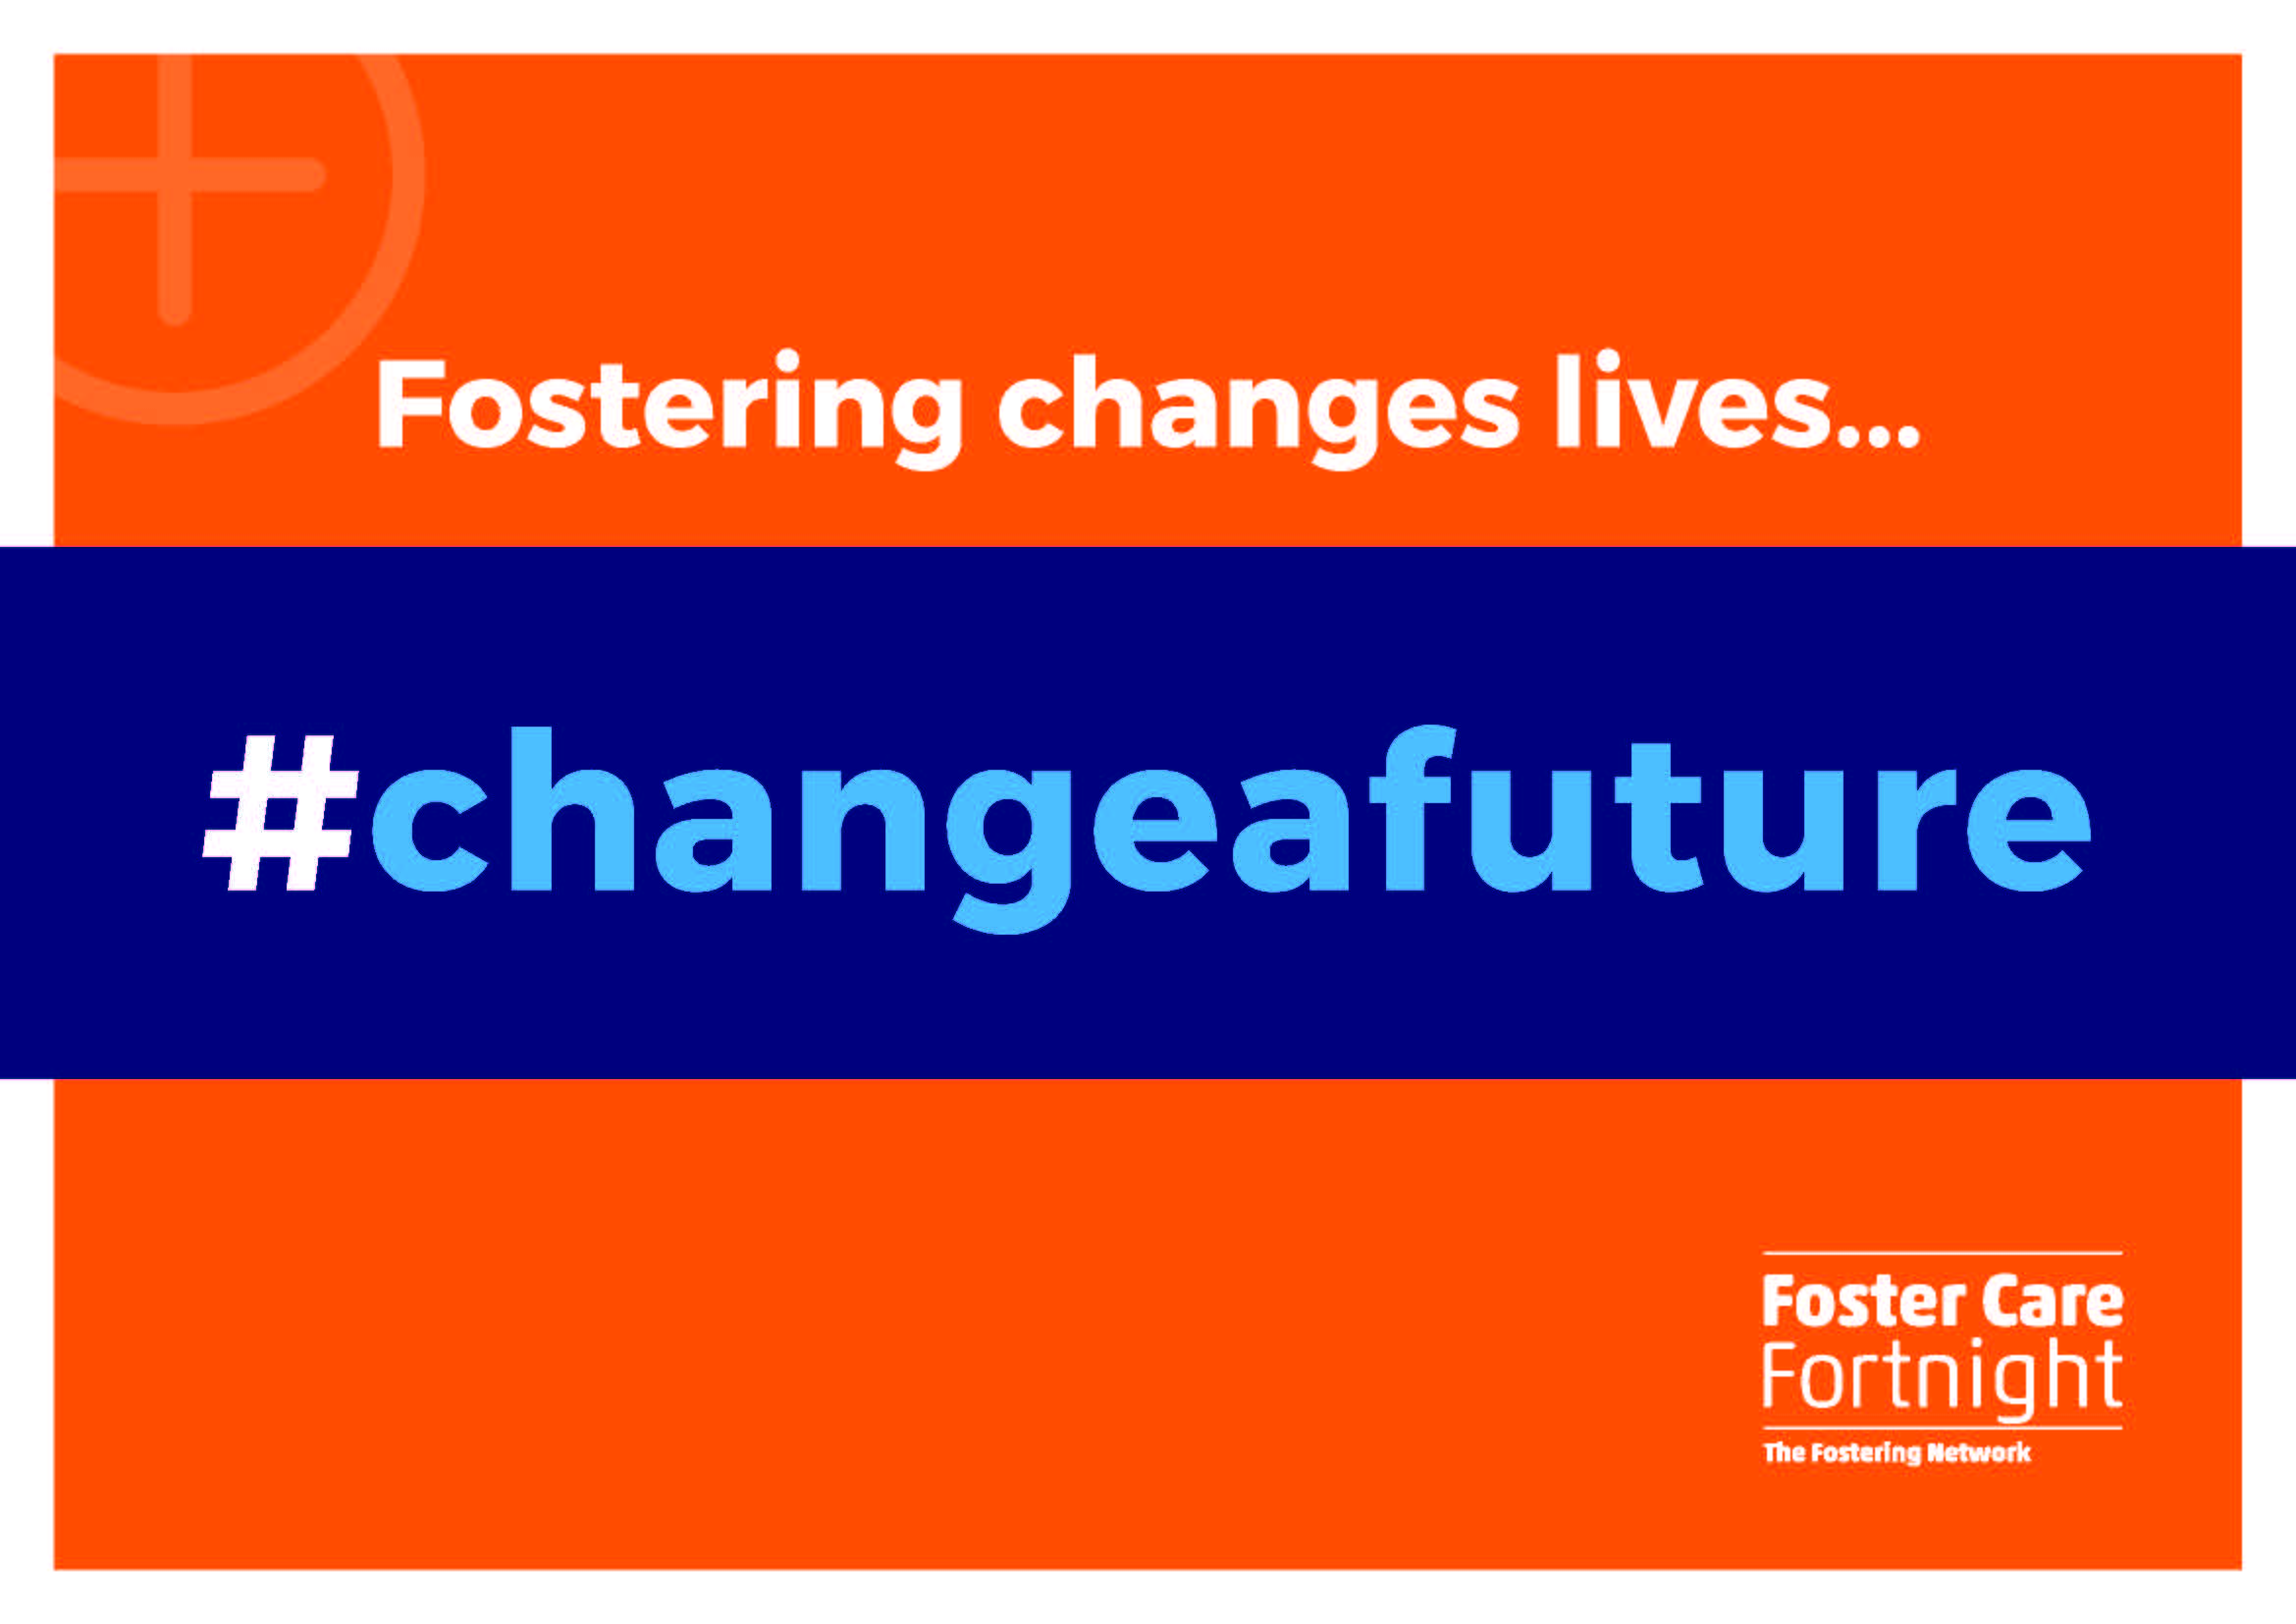 Foster Care Fortnight #changeafuture Poster